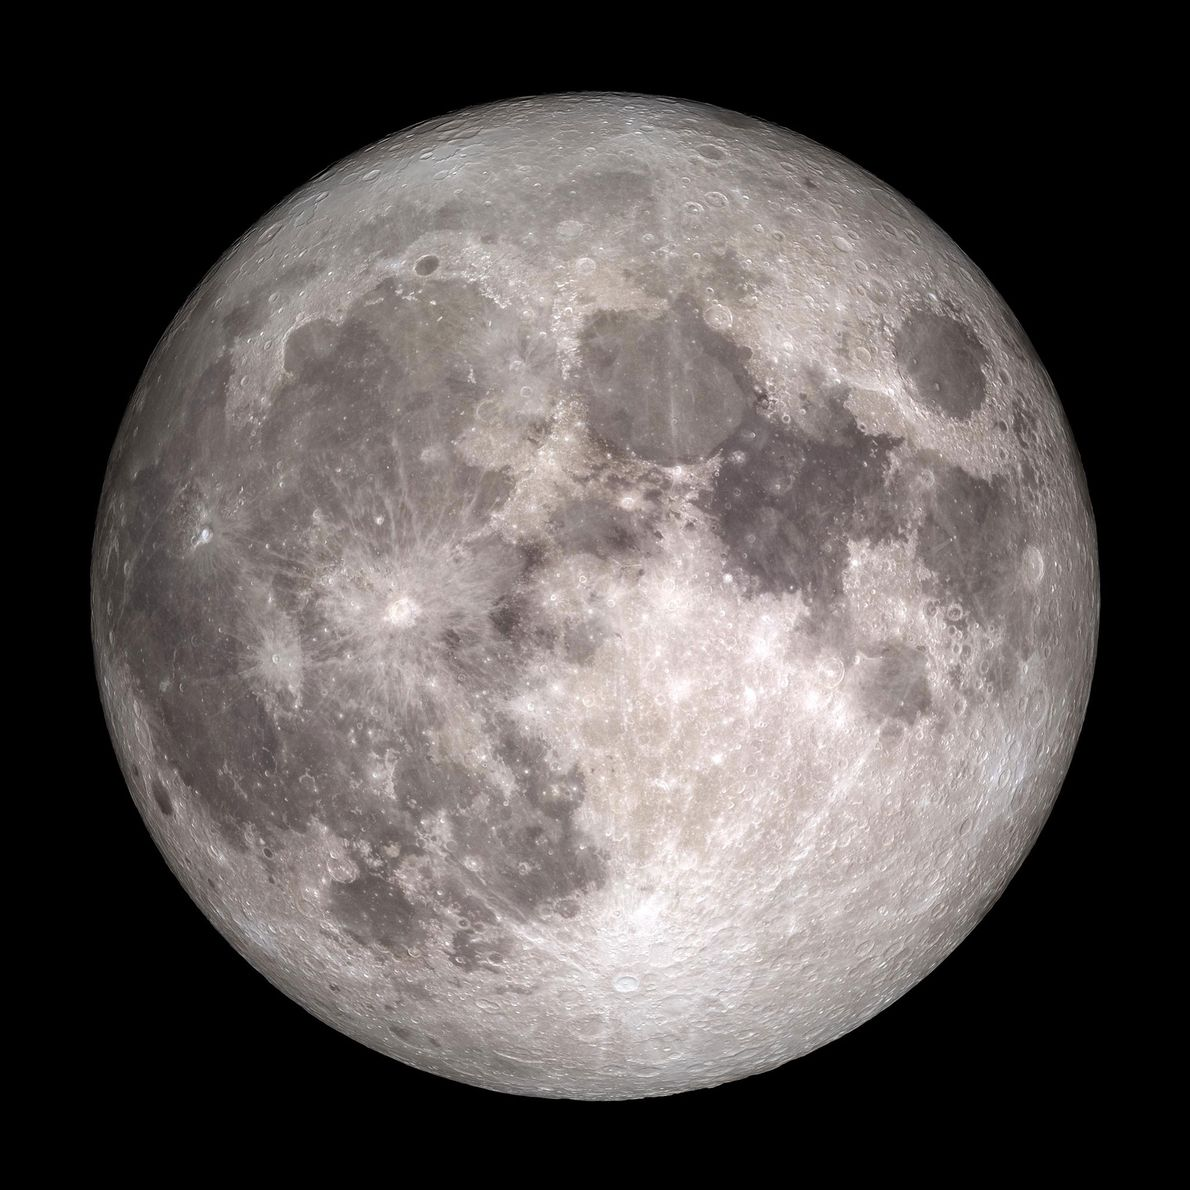 This photo of a full moon was captured by NASA's Lunar Reconnaissance Orbiter, which has been ...